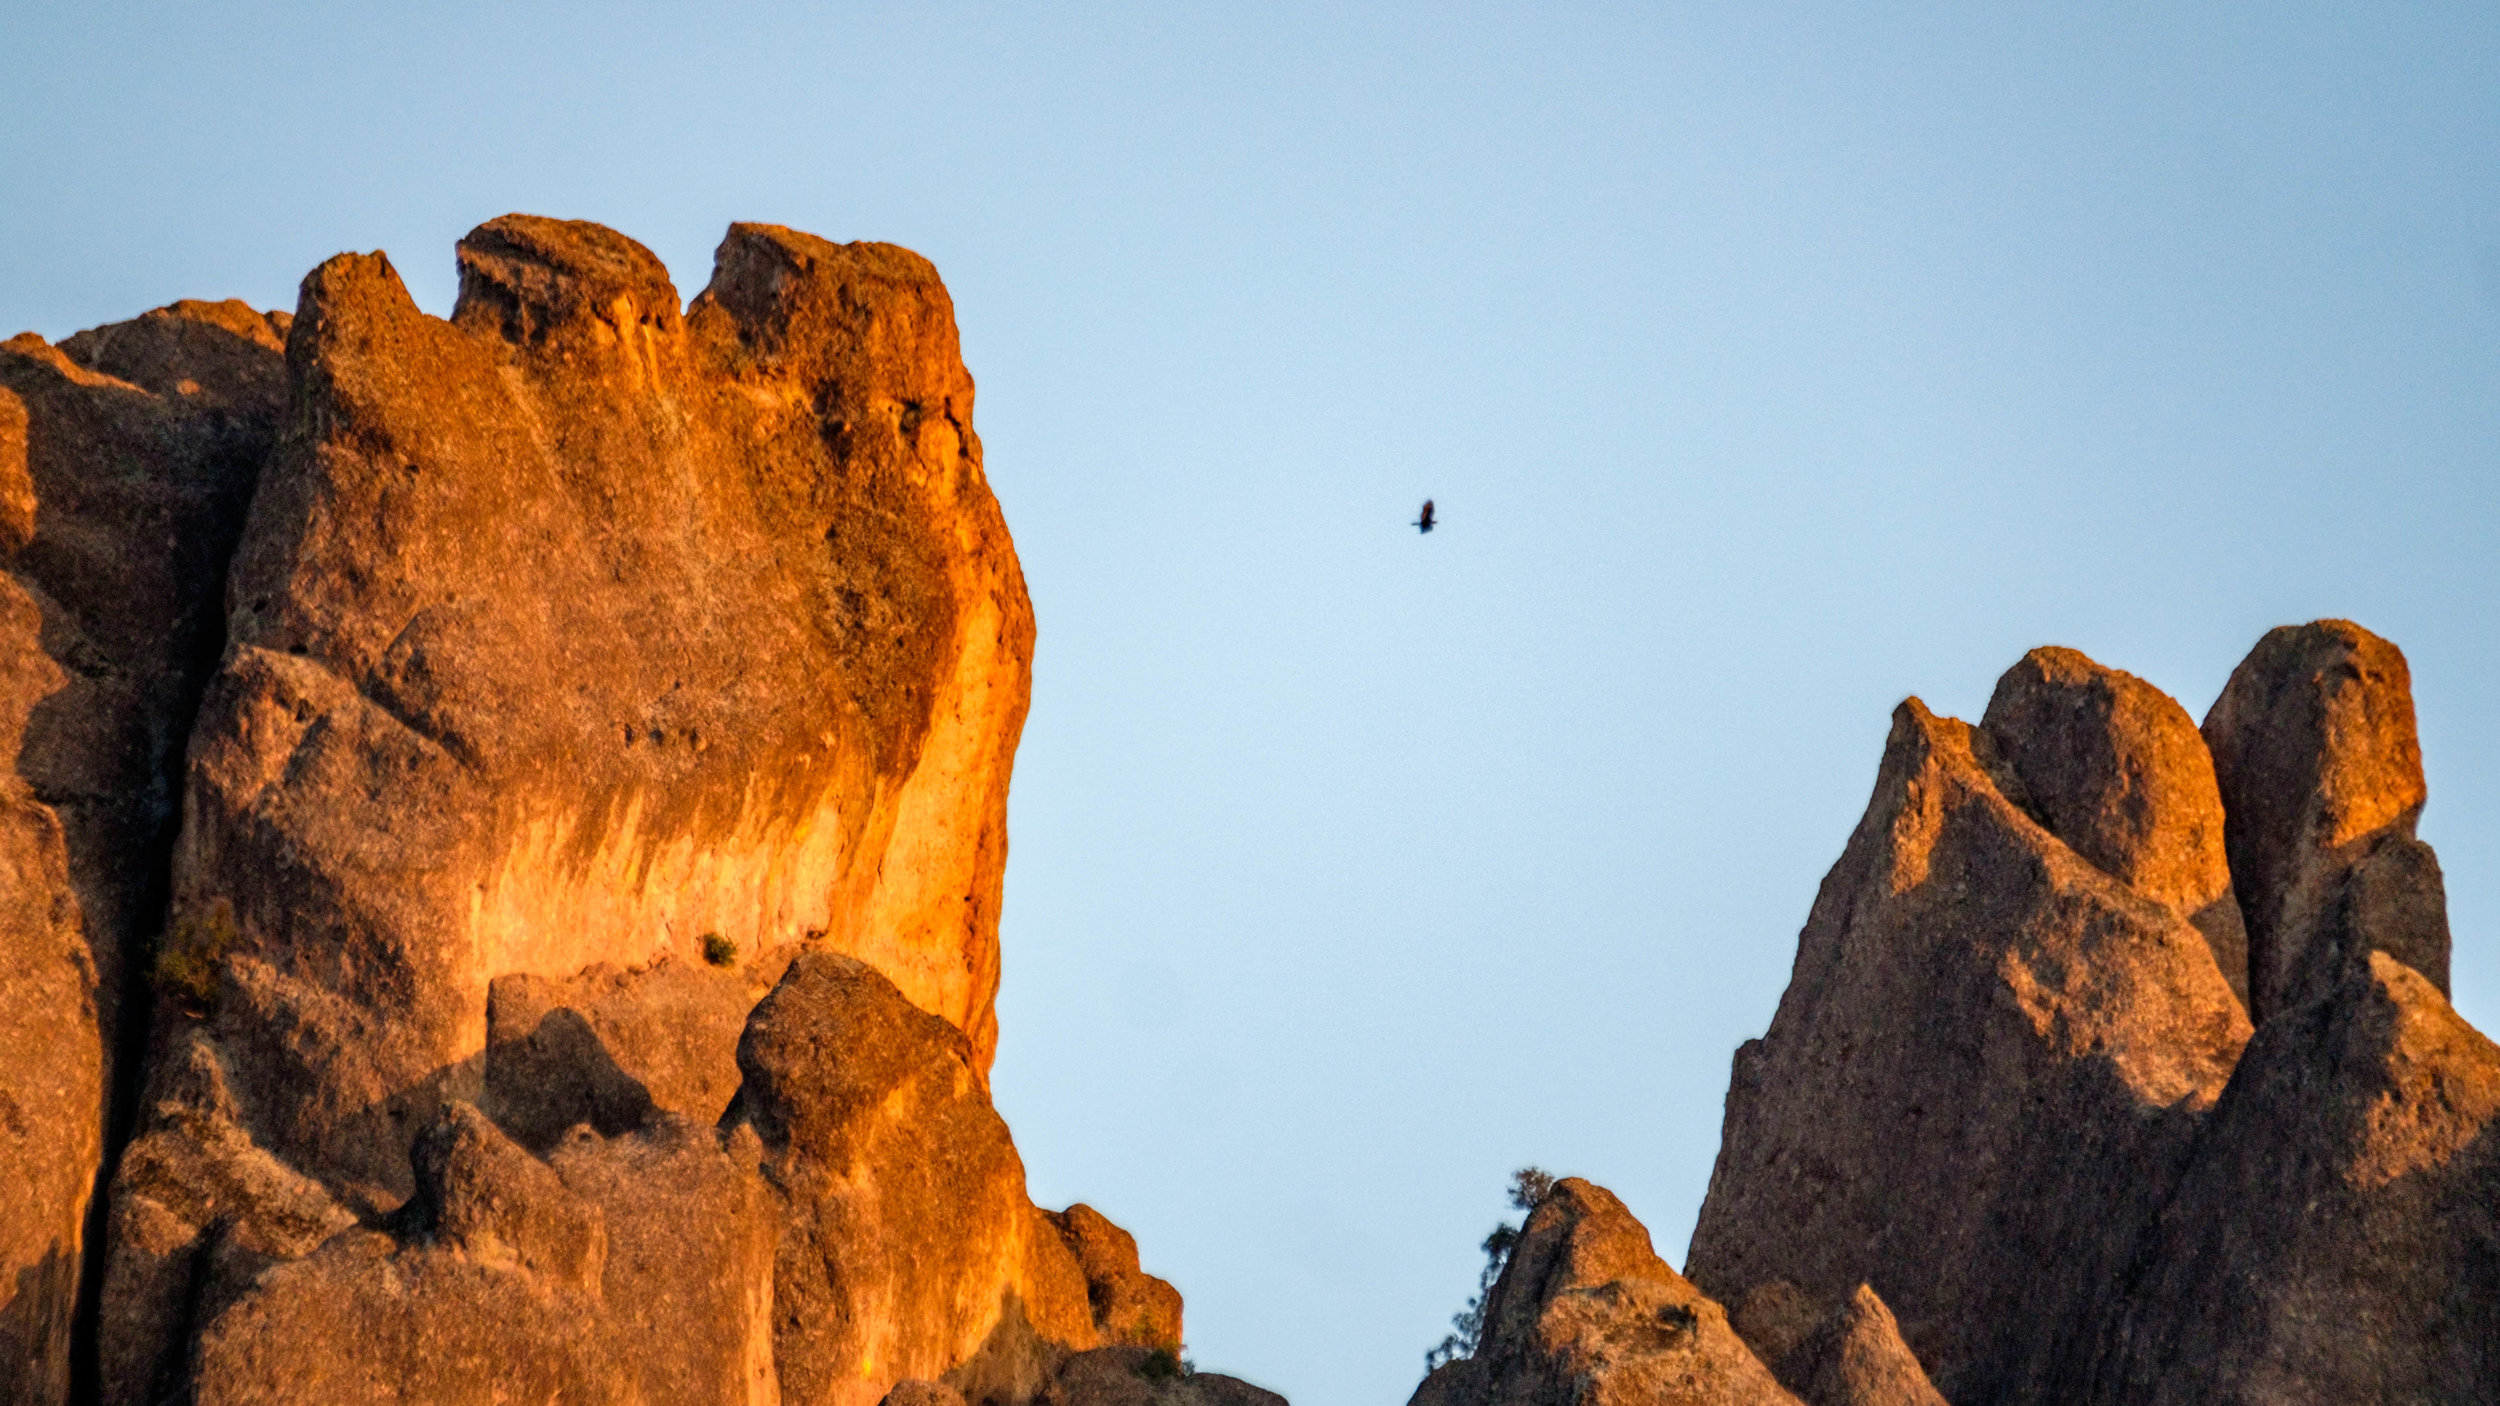 More condors soaring among the spires.